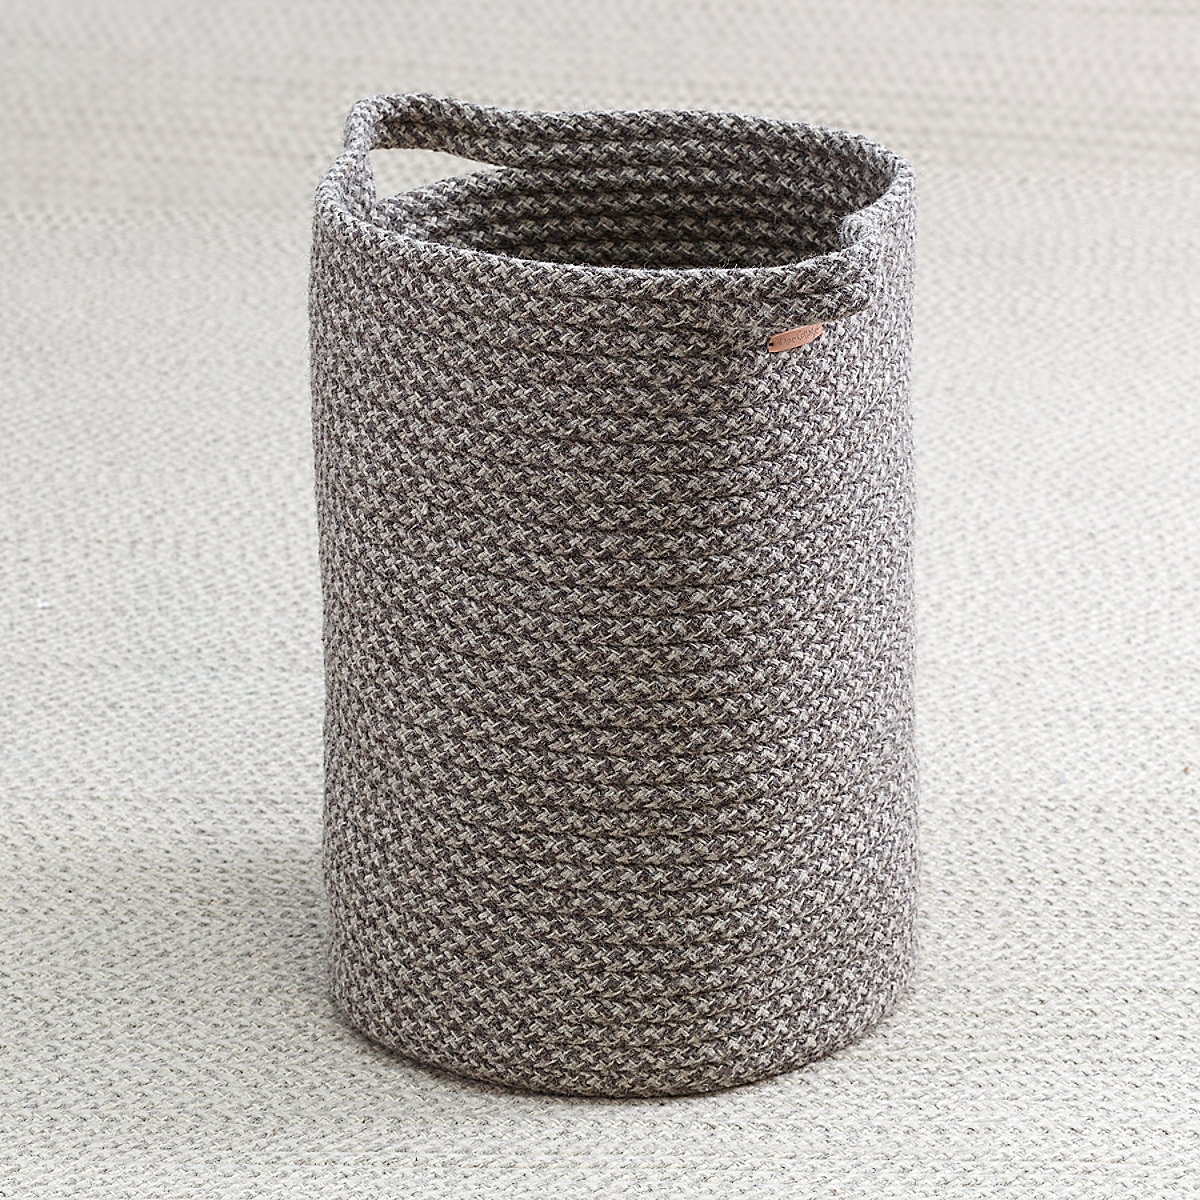 Big Braided Wool Basket - Houndstooth